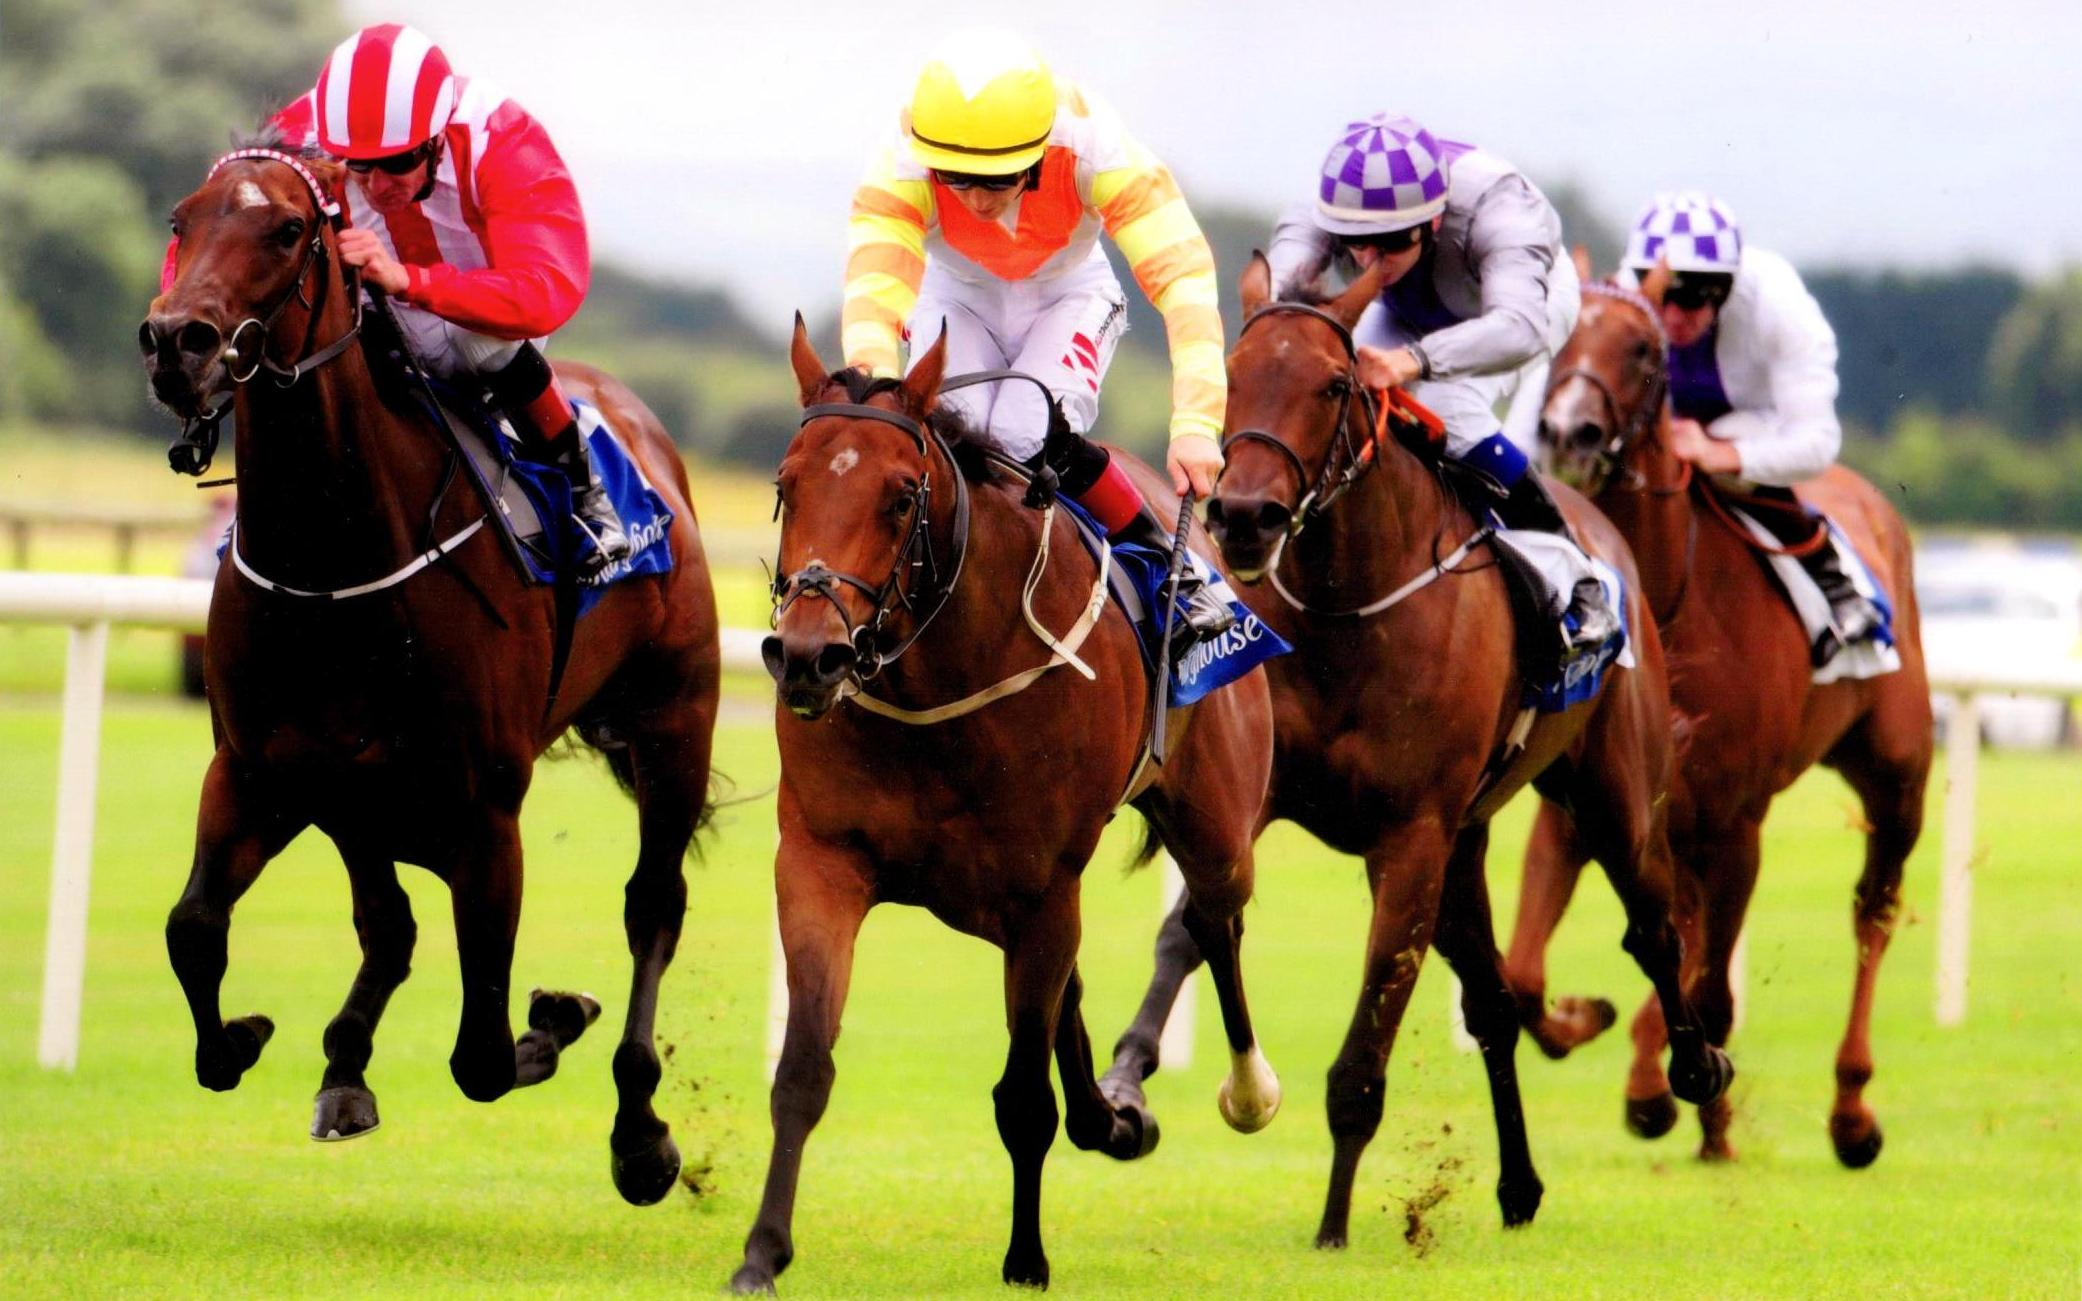 BLUE ULURU lands her maiden for owner Nicholas Varney at Fairyhouse 23rd July 2017